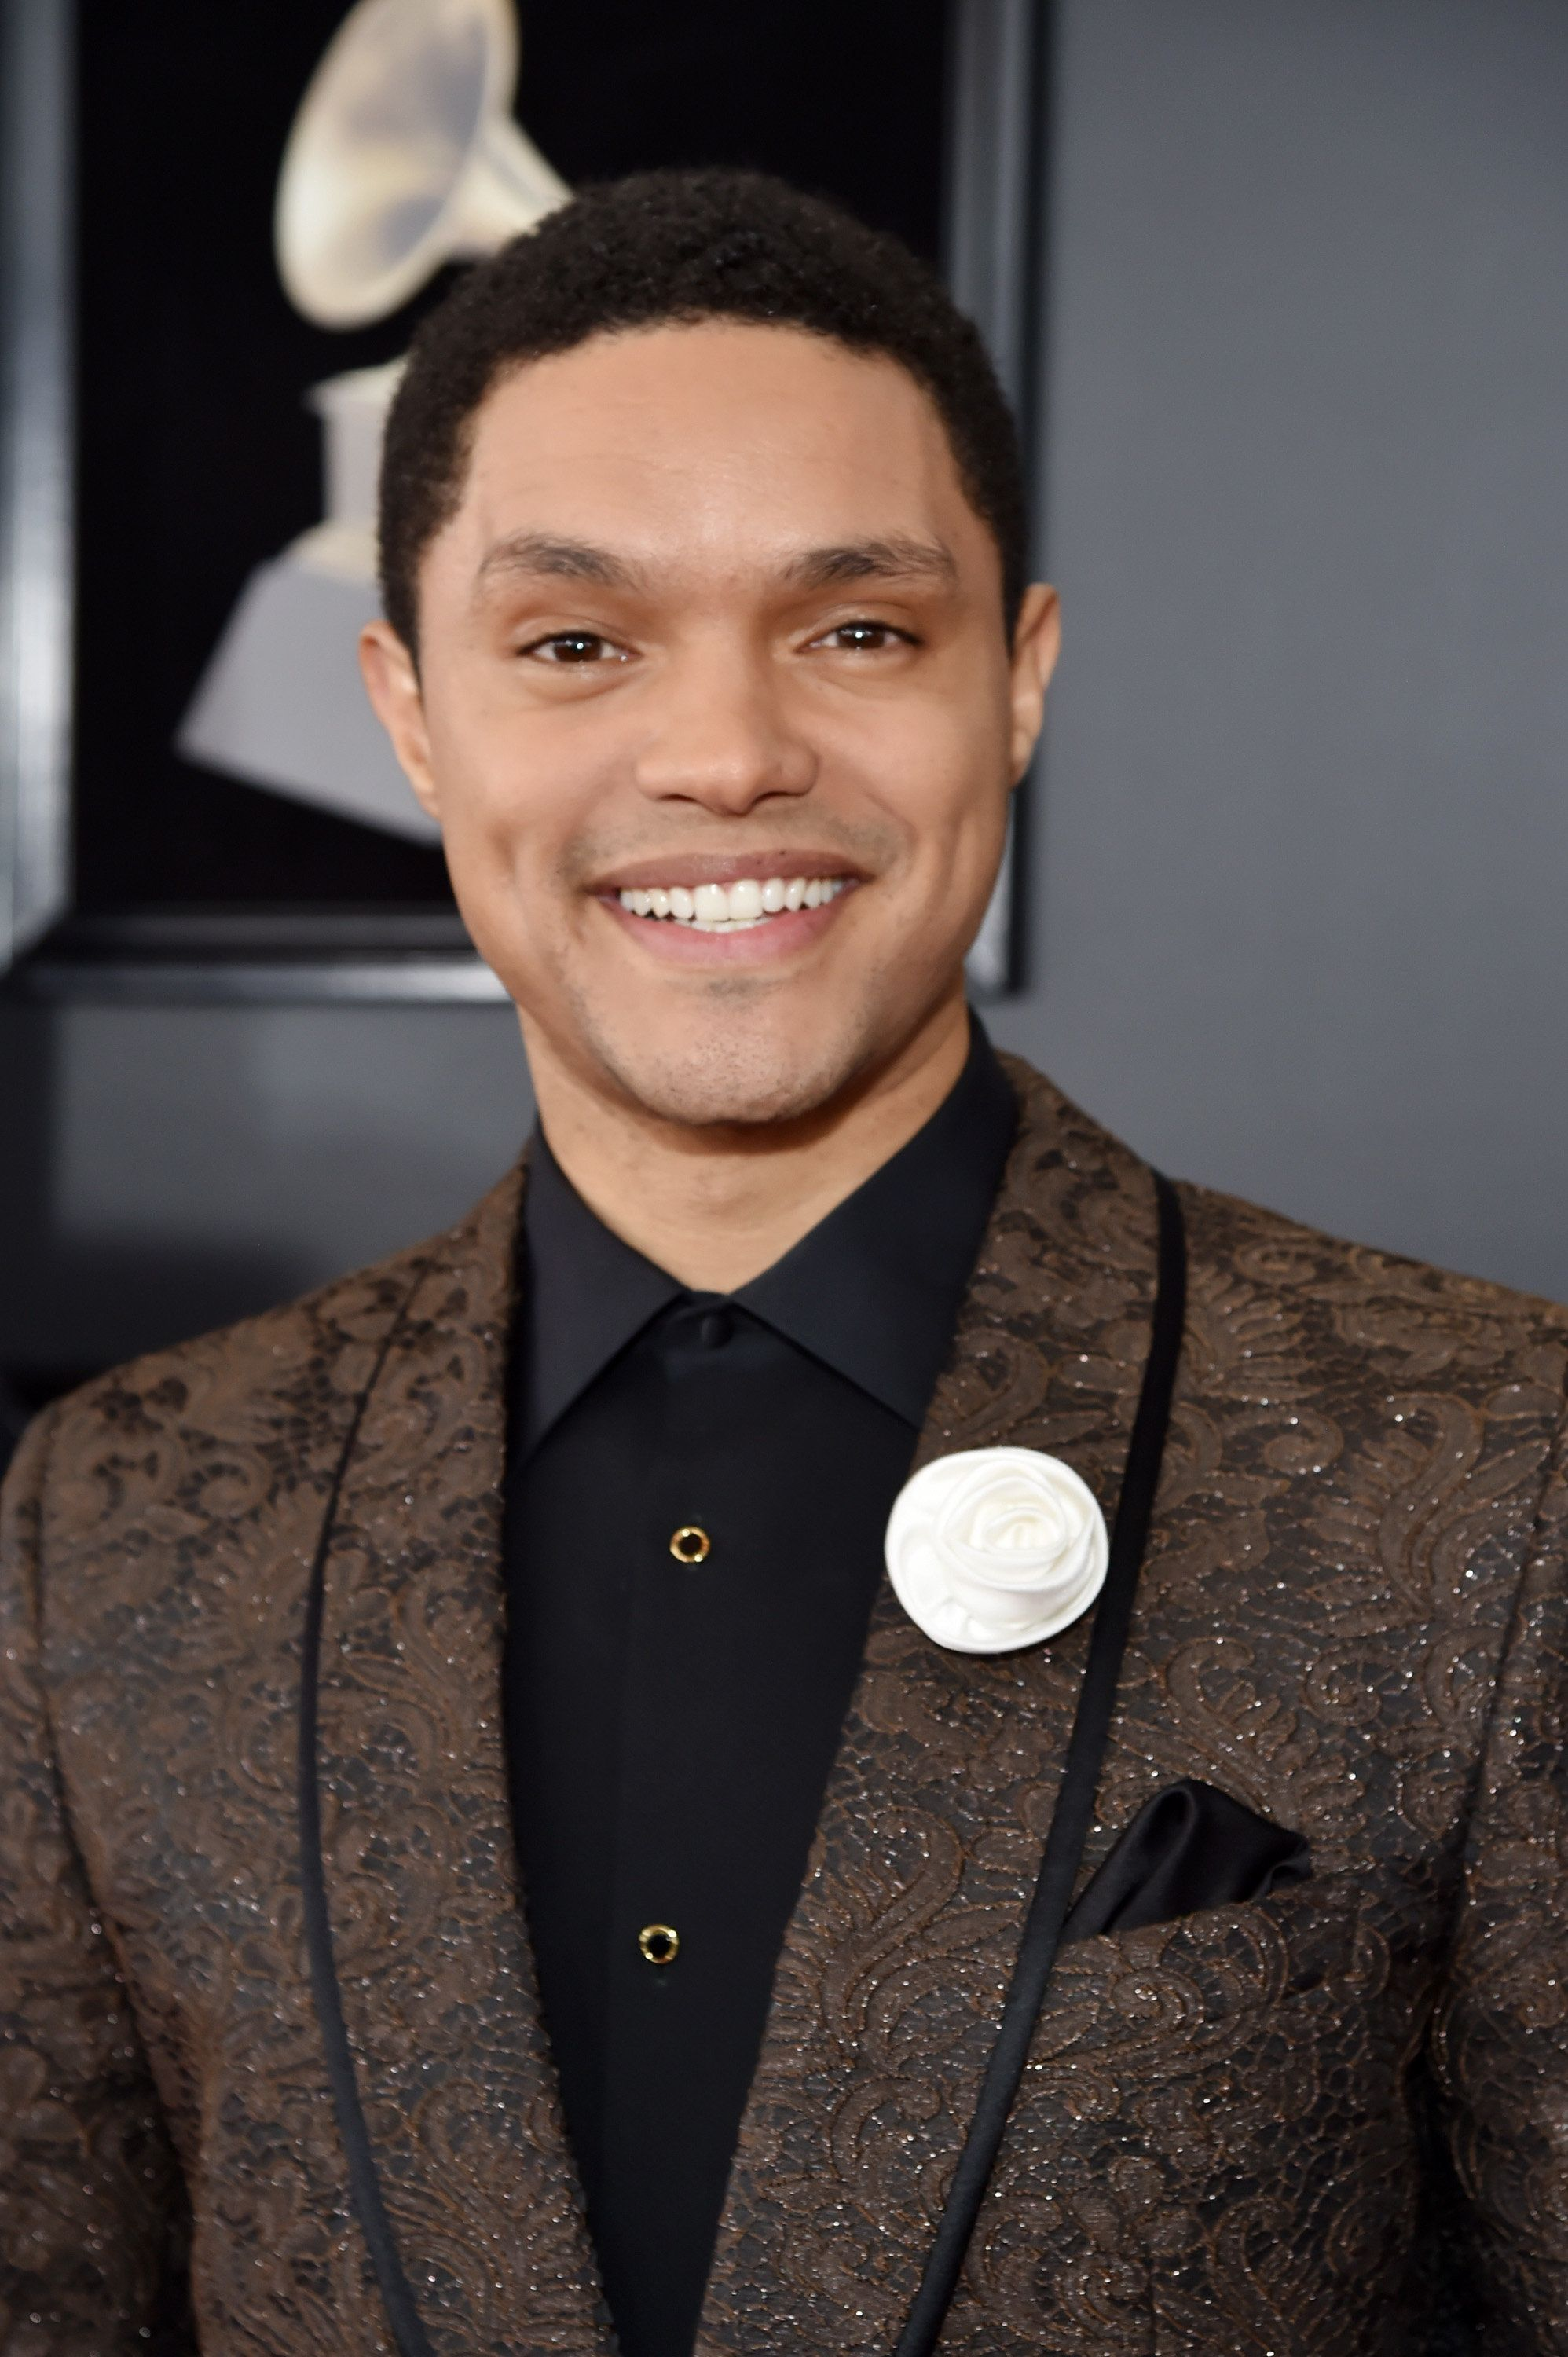 NEW YORK, NY - JANUARY 28: Comedian Trevor Noah attends the 60th Annual GRAMMY Awards at Madison Square Garden on January 28, 2018 in New York City.  (Photo by Kevin Mazur/Getty Images for NARAS)